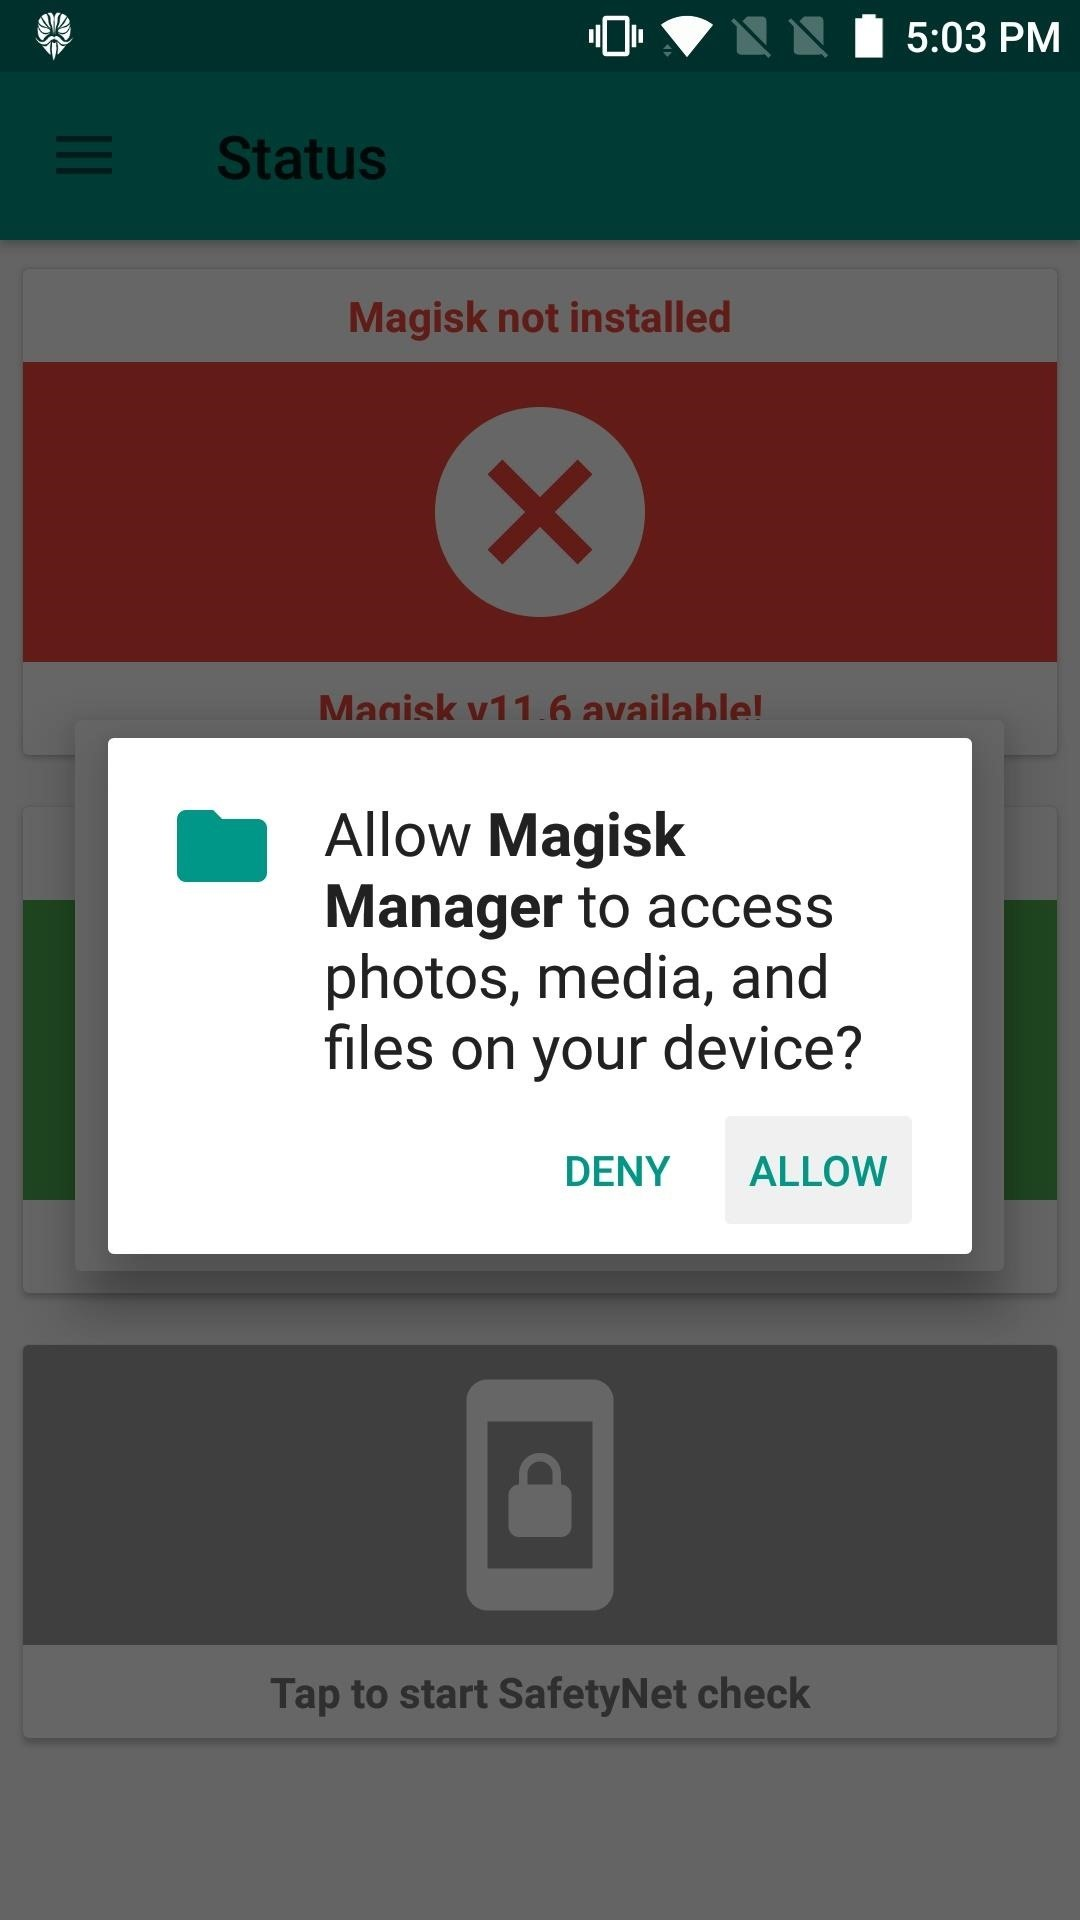 How to Install Magisk on Your Android Device